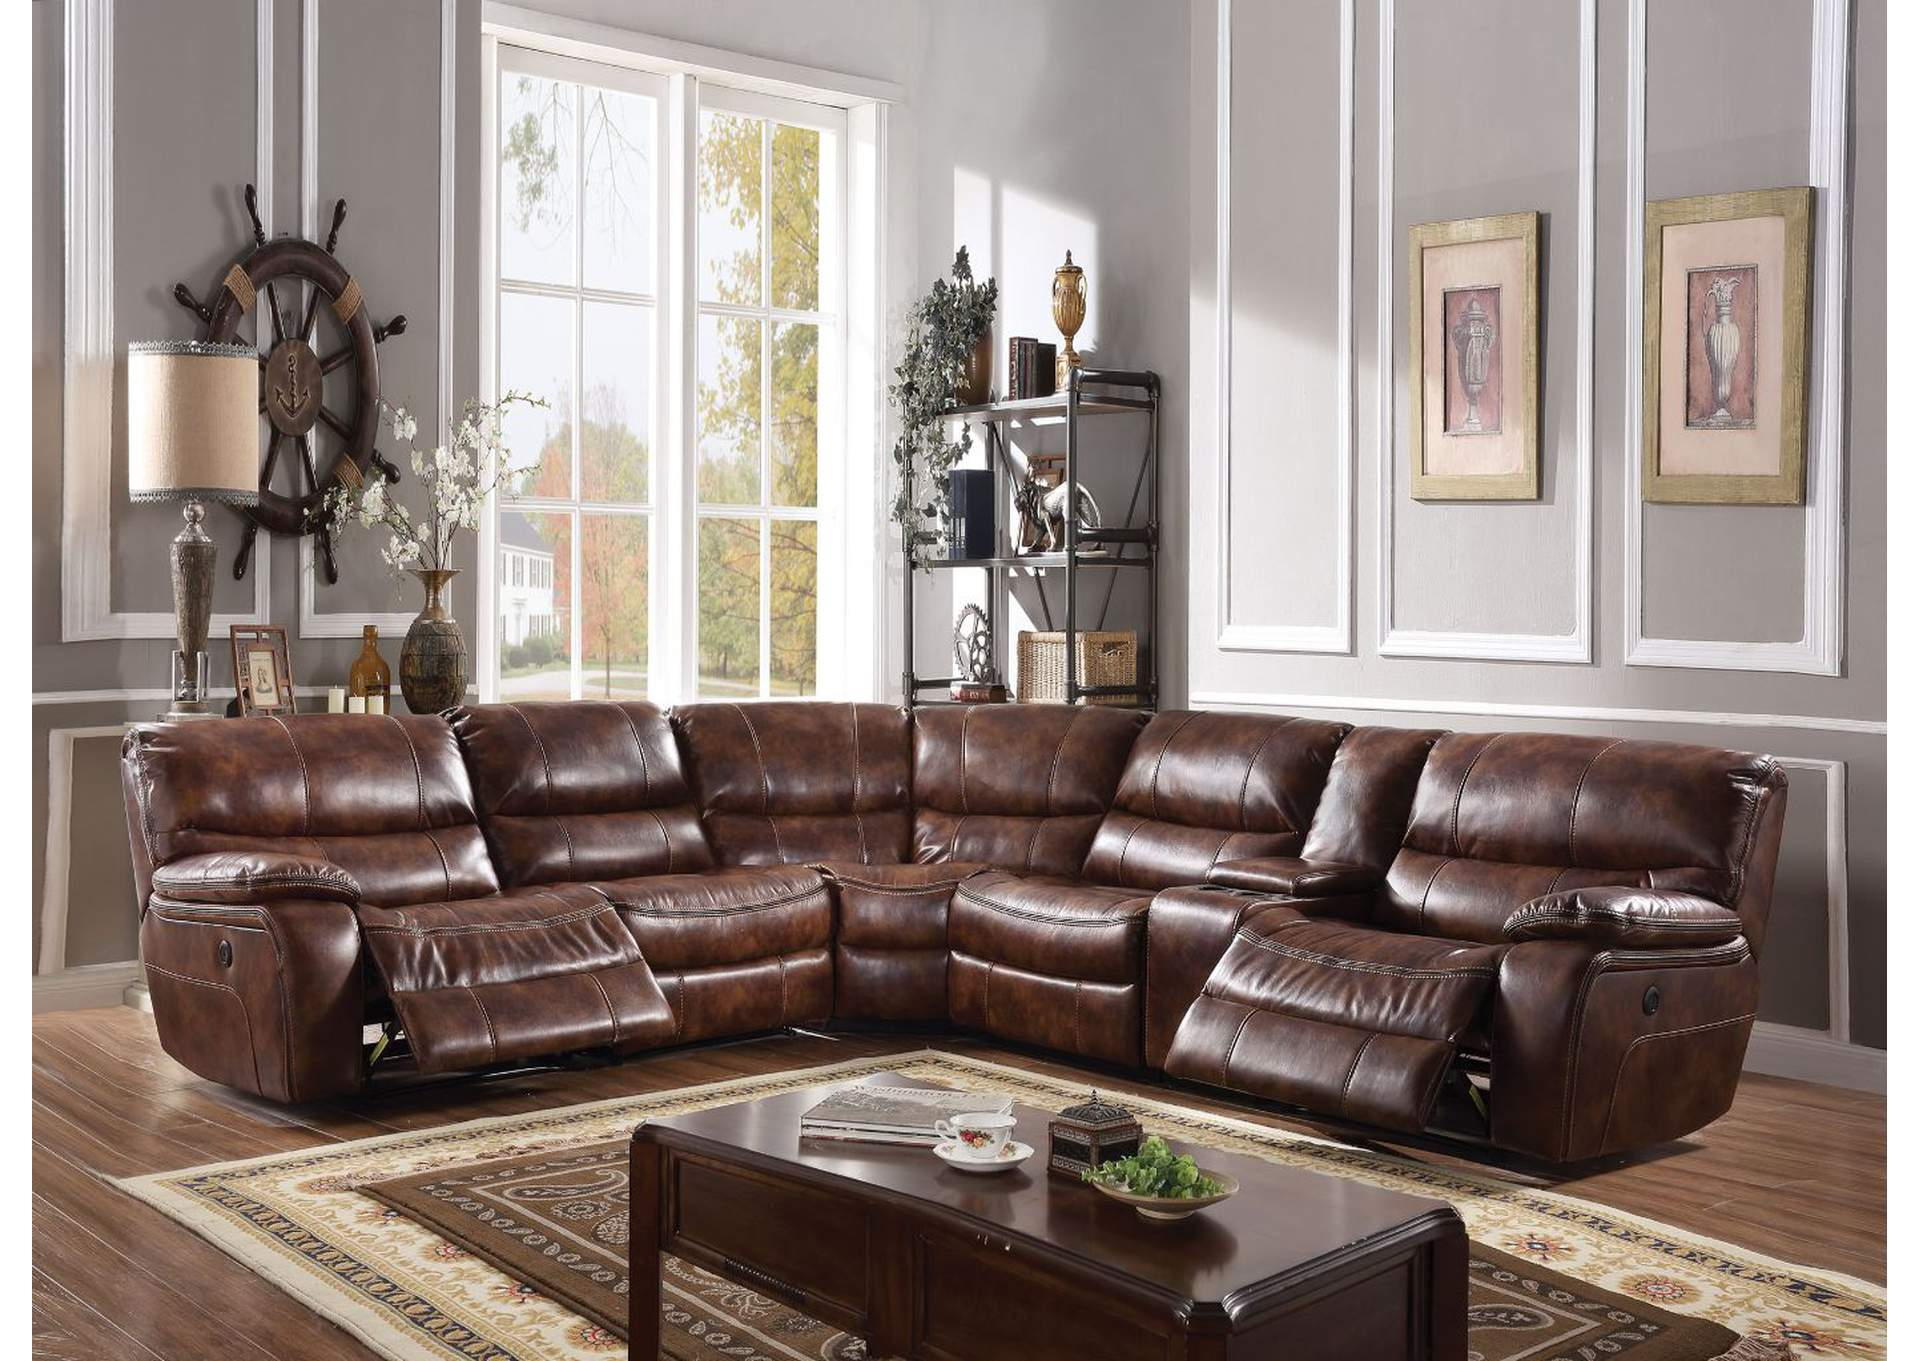 Brax 2-Tone Brown Leather-Gel Sectional Sofa,Acme